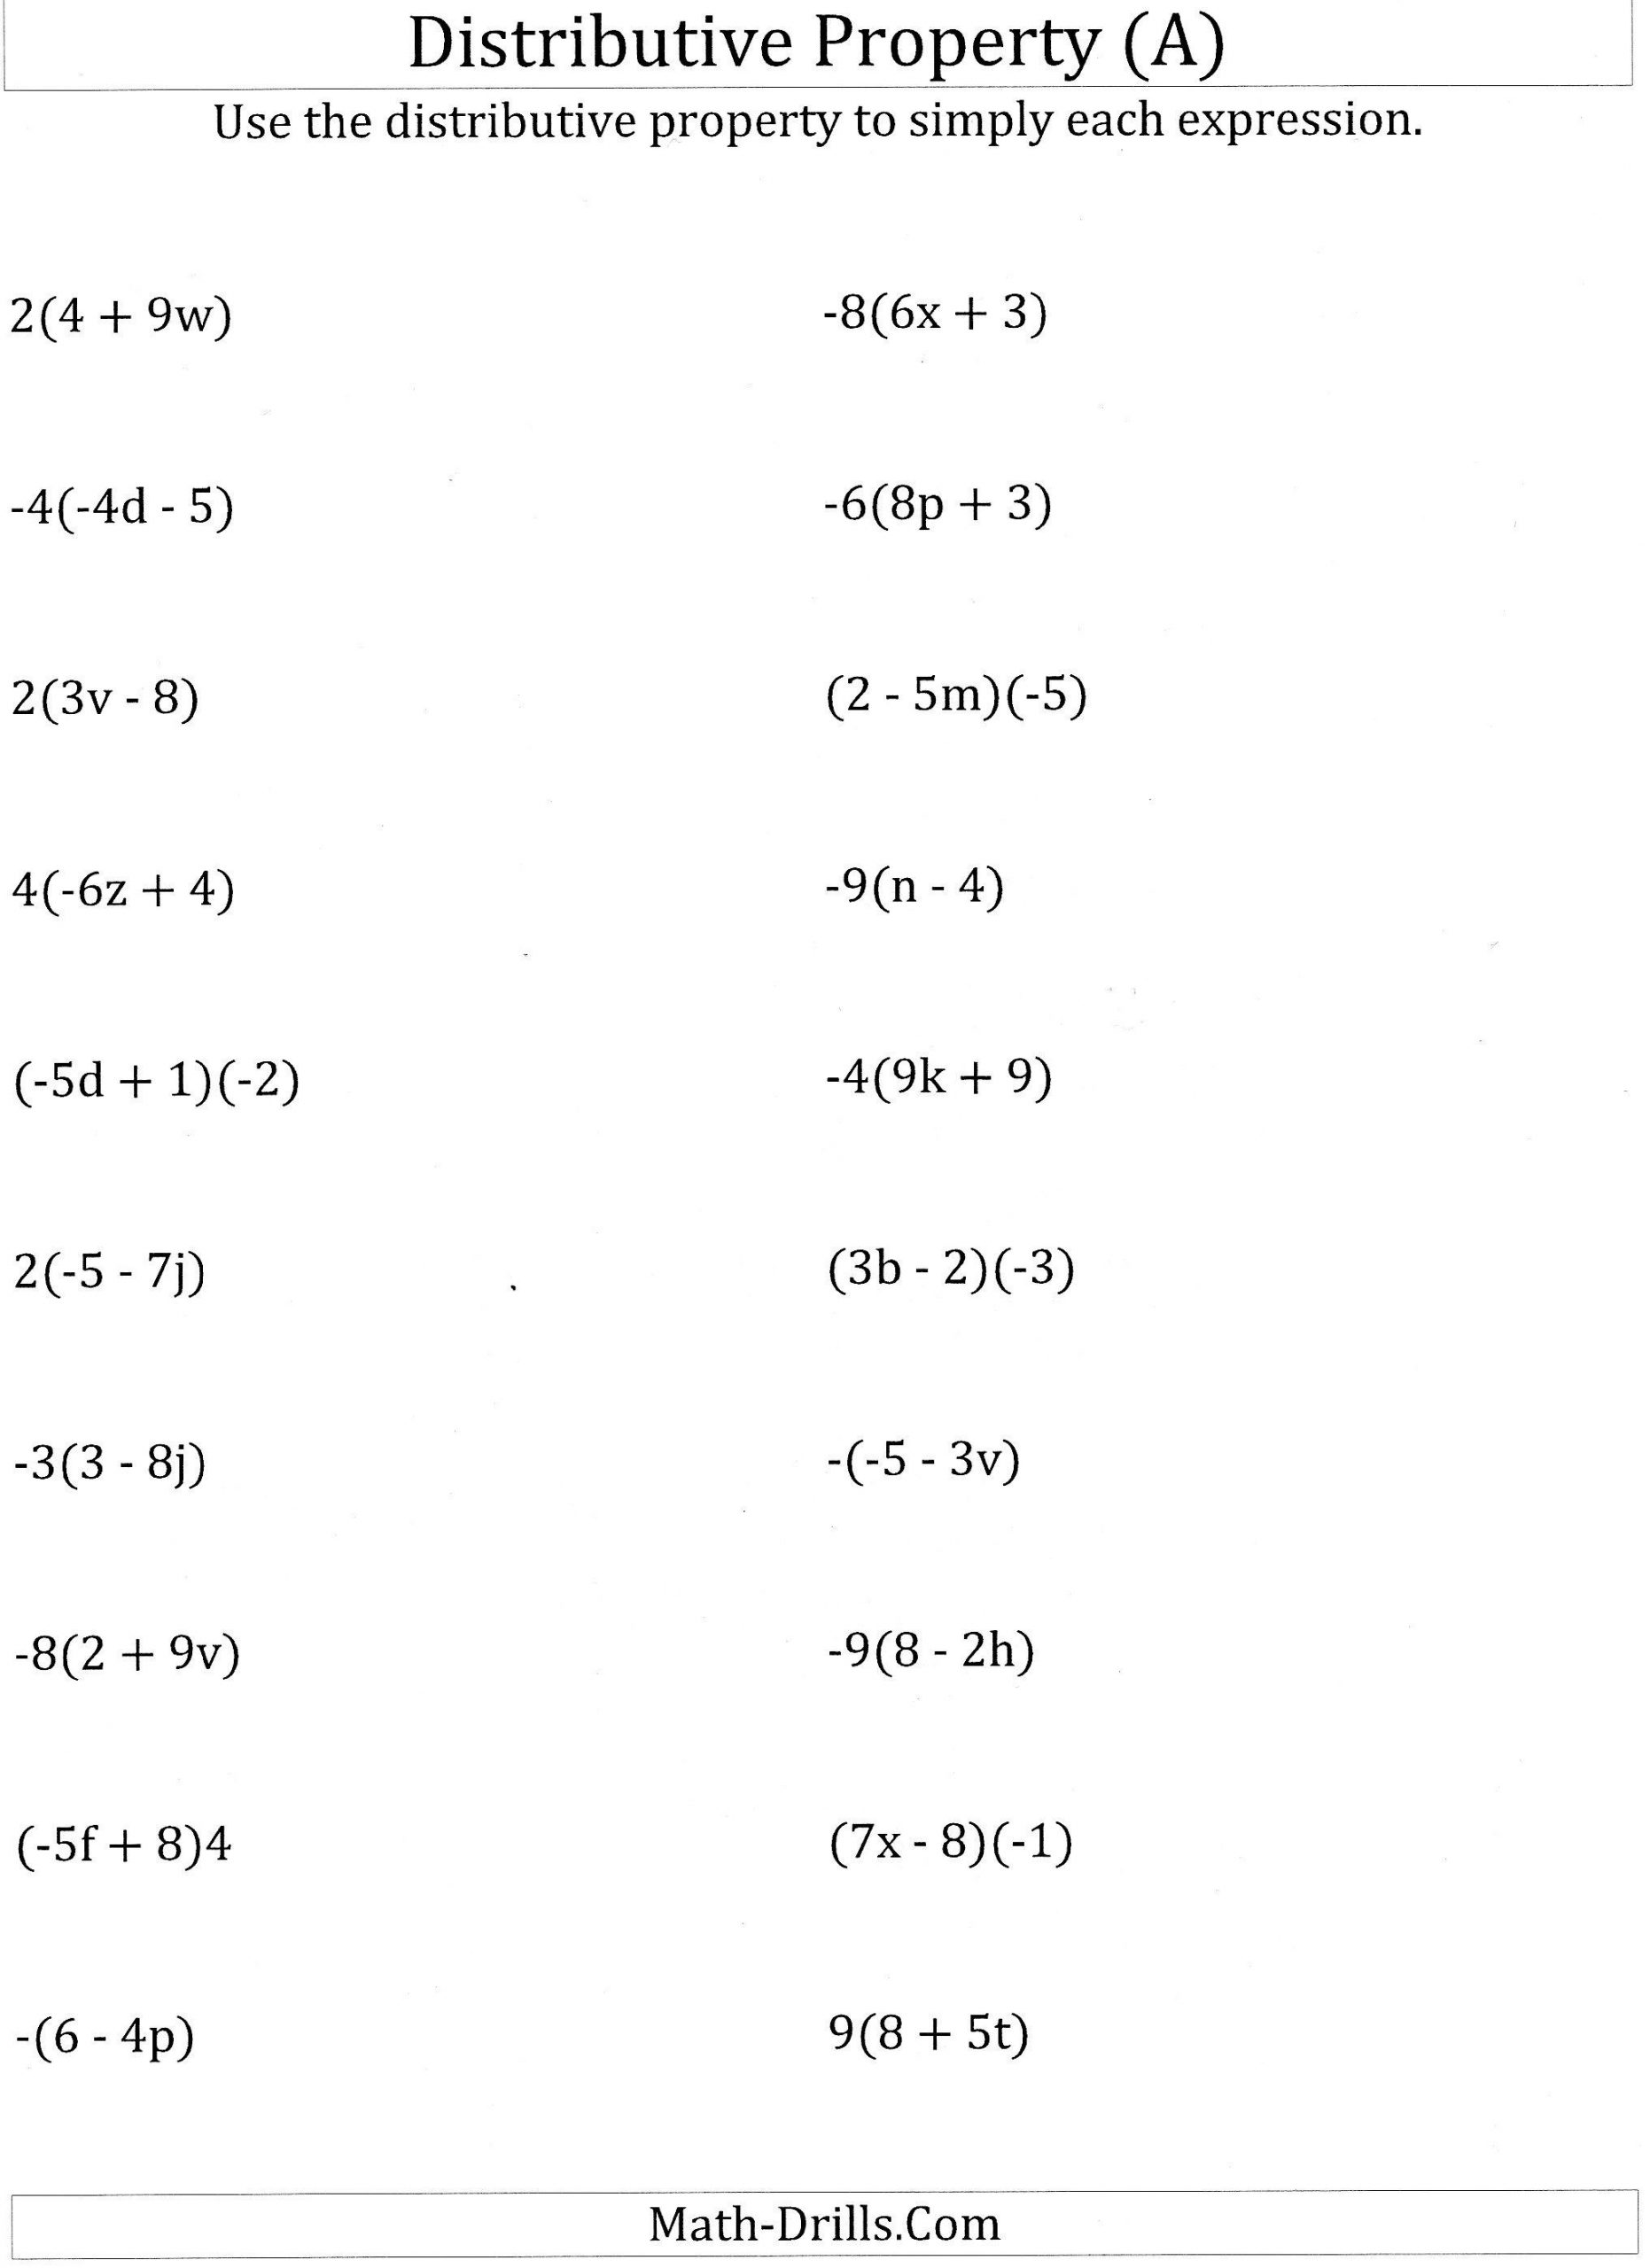 Distributive Property Worksheet 3rd Grade Worksheet Math Worksheets Distributive Property